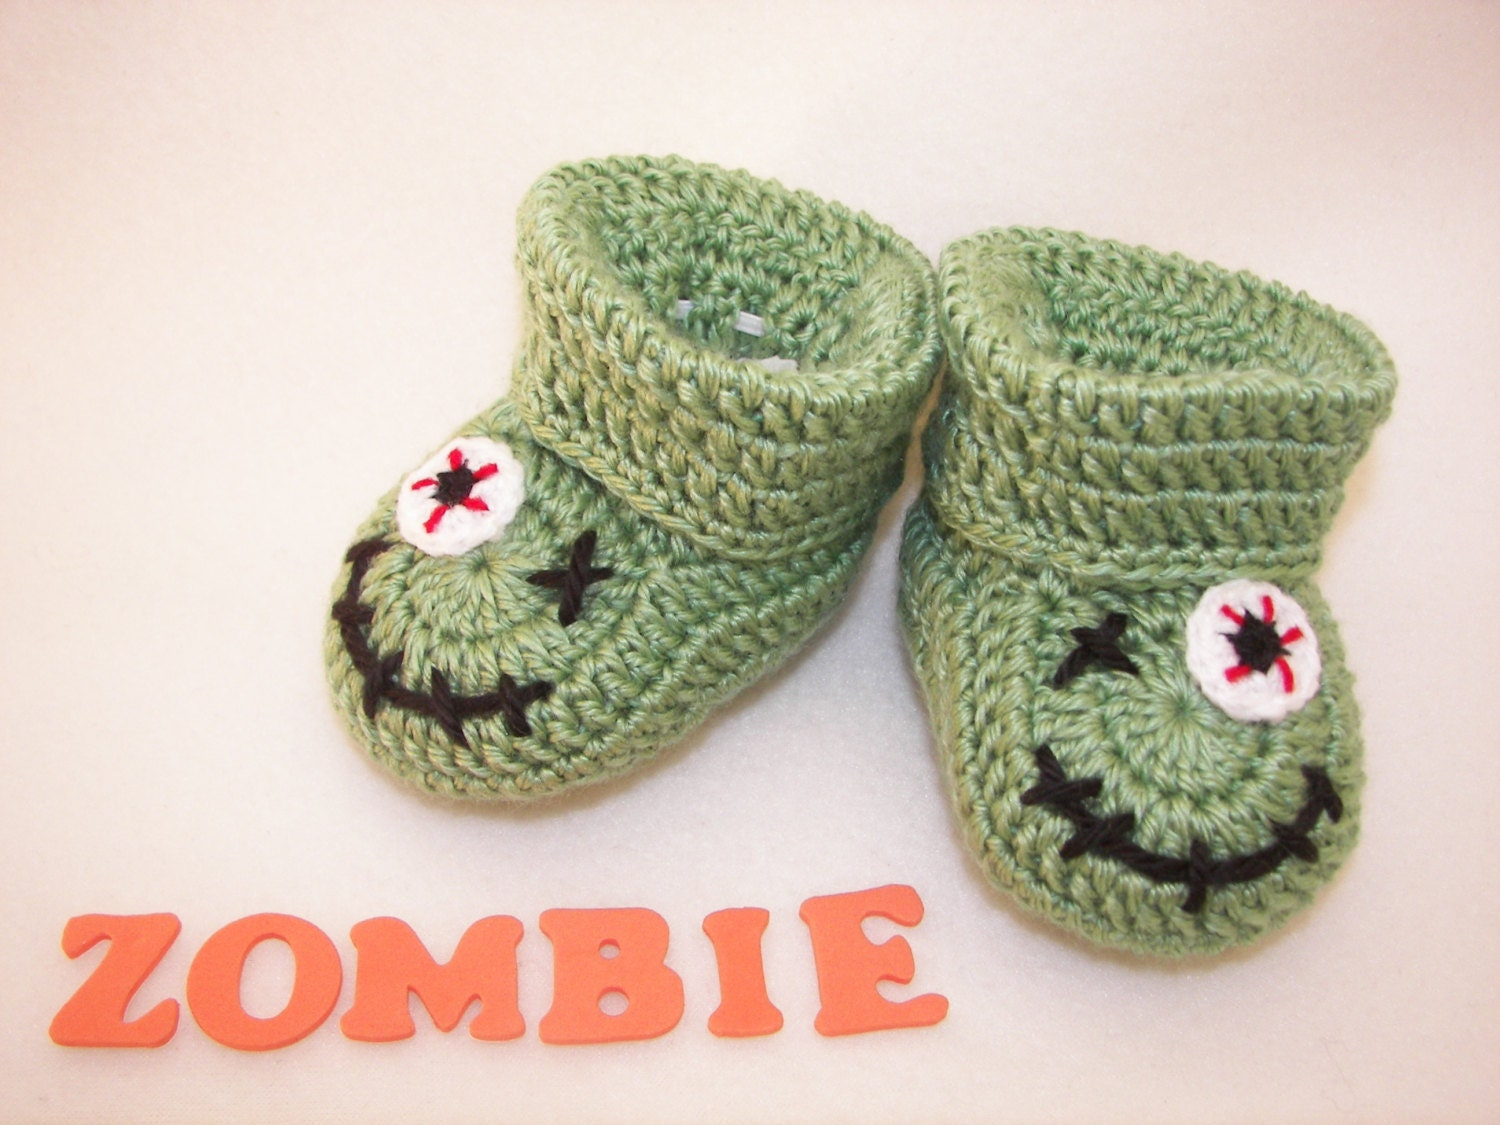 Crochet Zombie Patterns : Crochet Pattern Baby Booties Zombie Monster. Halloween